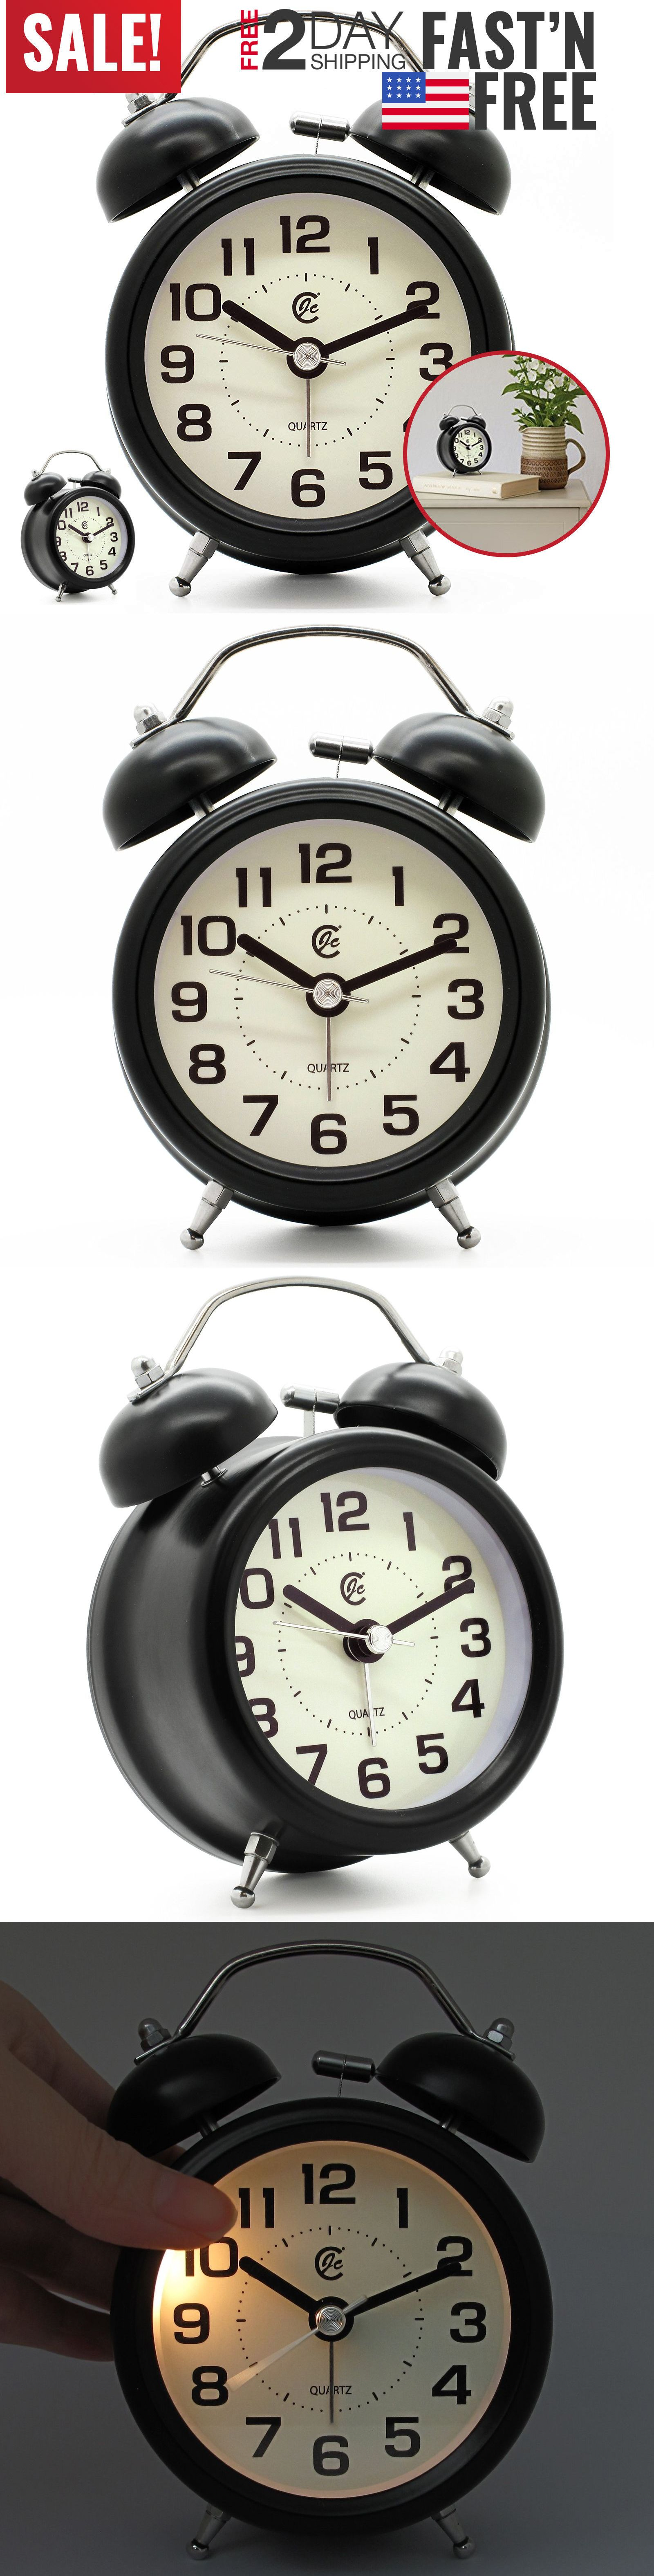 Analog Alarm Clock Vintage Classic Retro Bedroom Bedside Battery Operated Loud